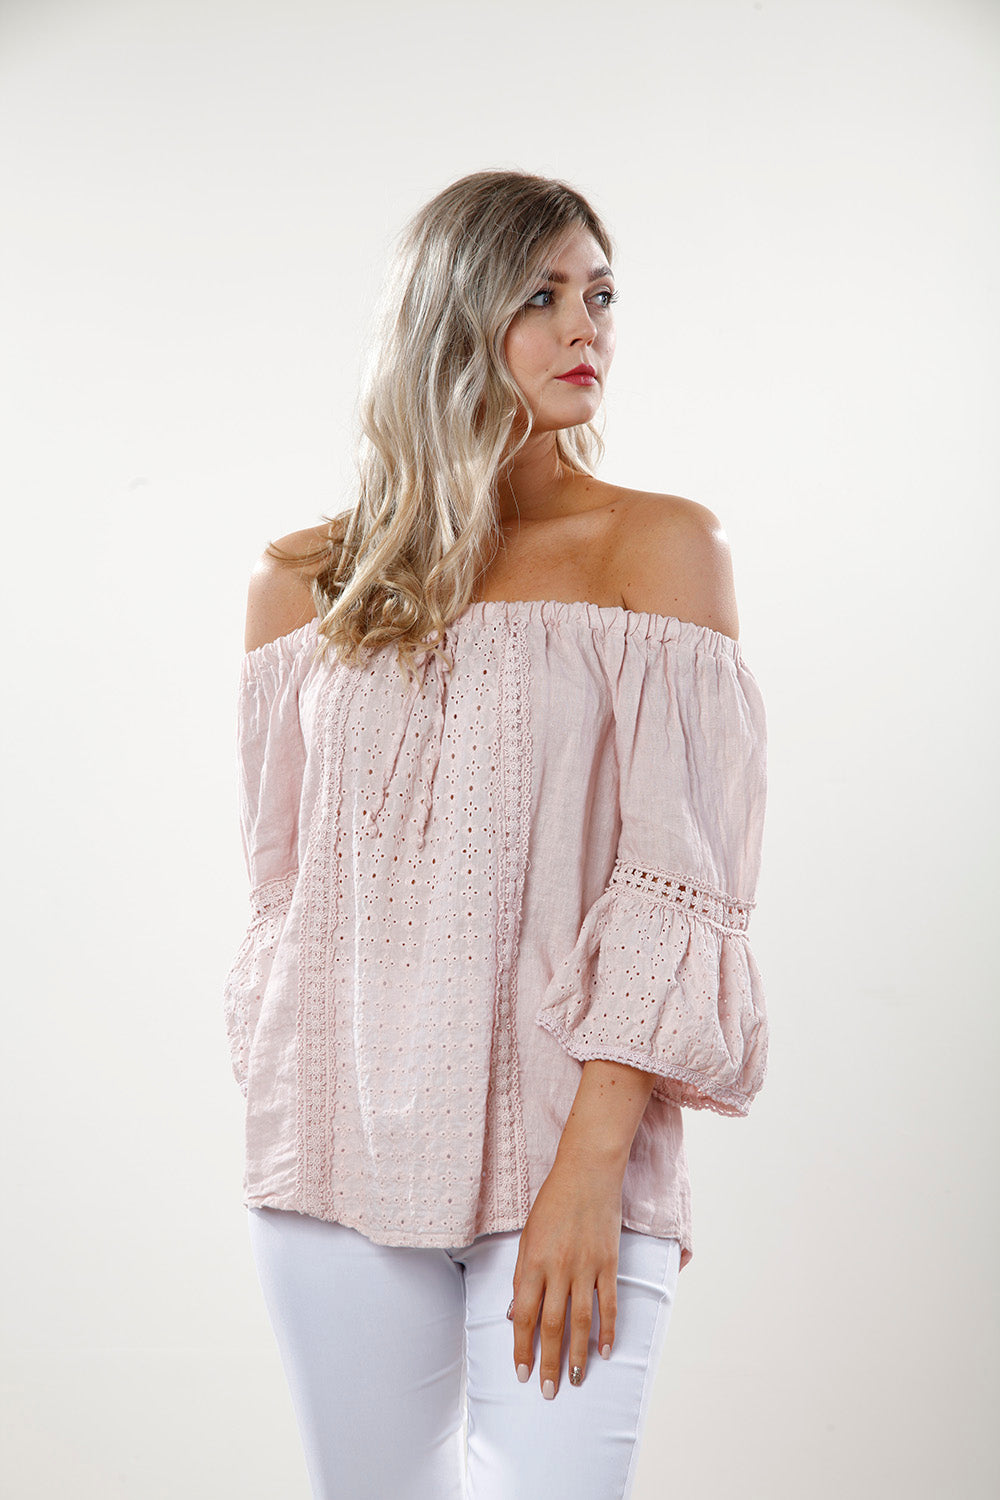 Pink Lace Gypsy Top - Goose Island